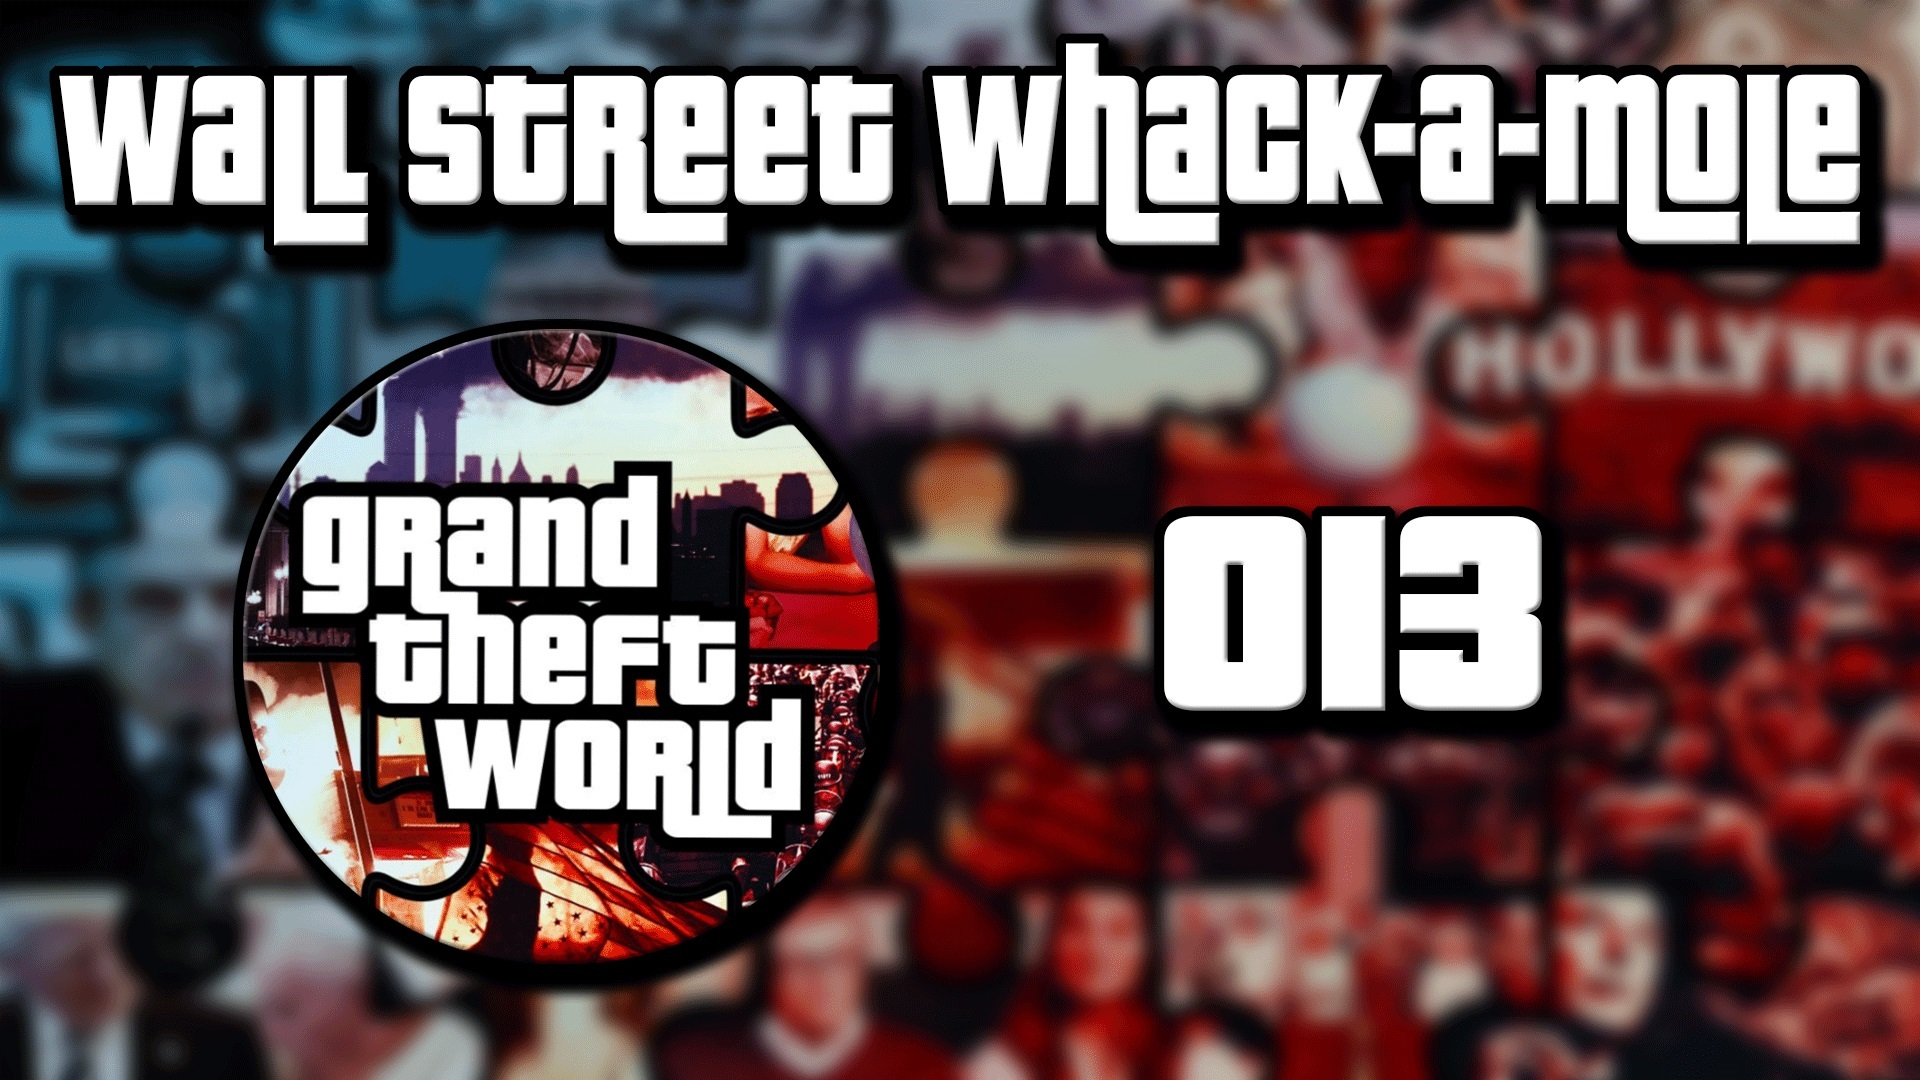 Grand Theft World Podcast 013 | Wall Street Whack-A-Mole